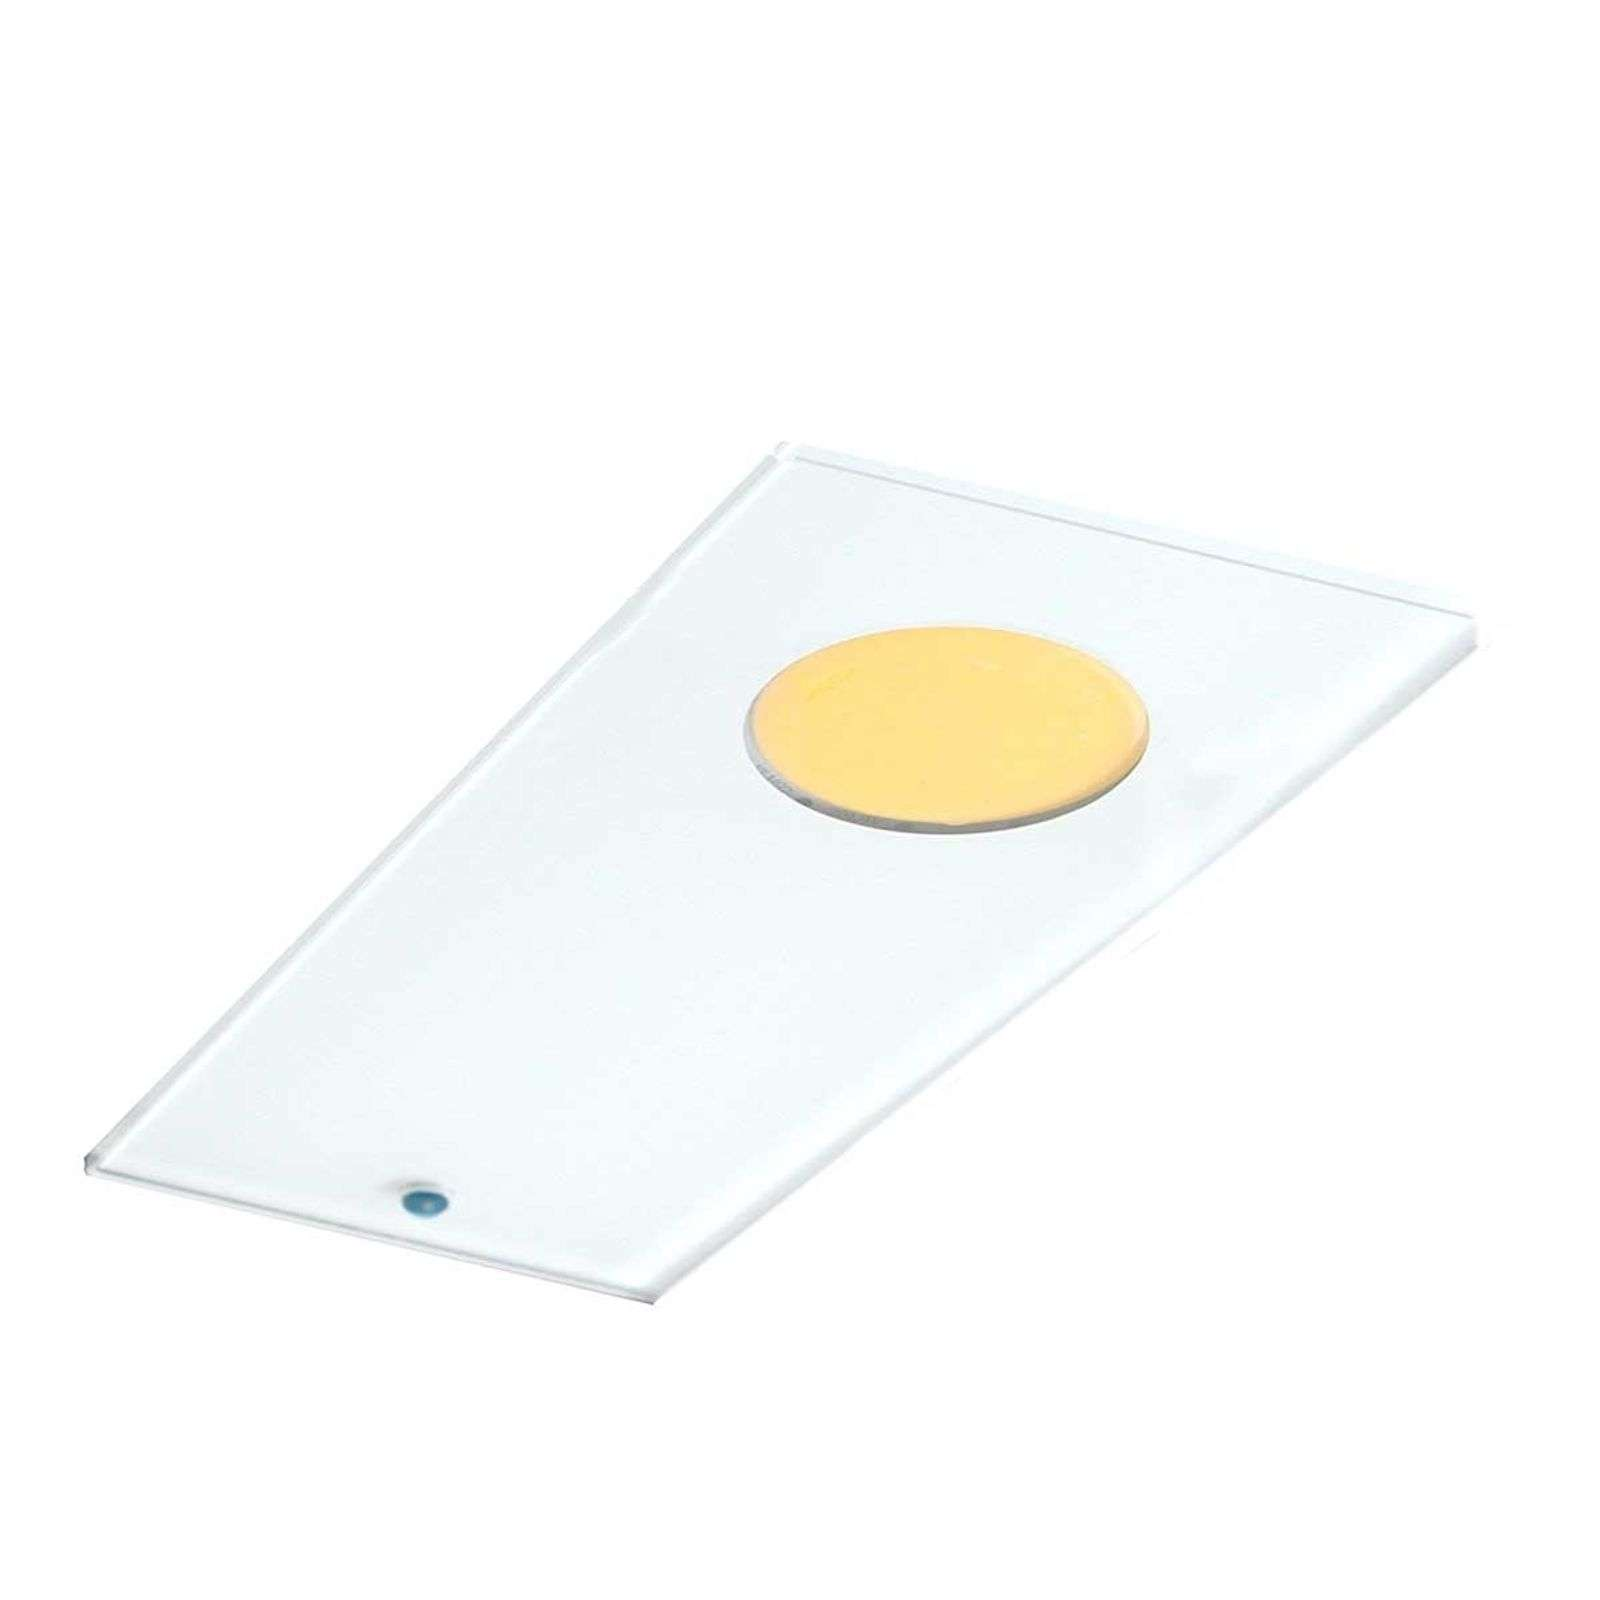 Aplique de encastre LED decorativo Sun 1, 3 uds.